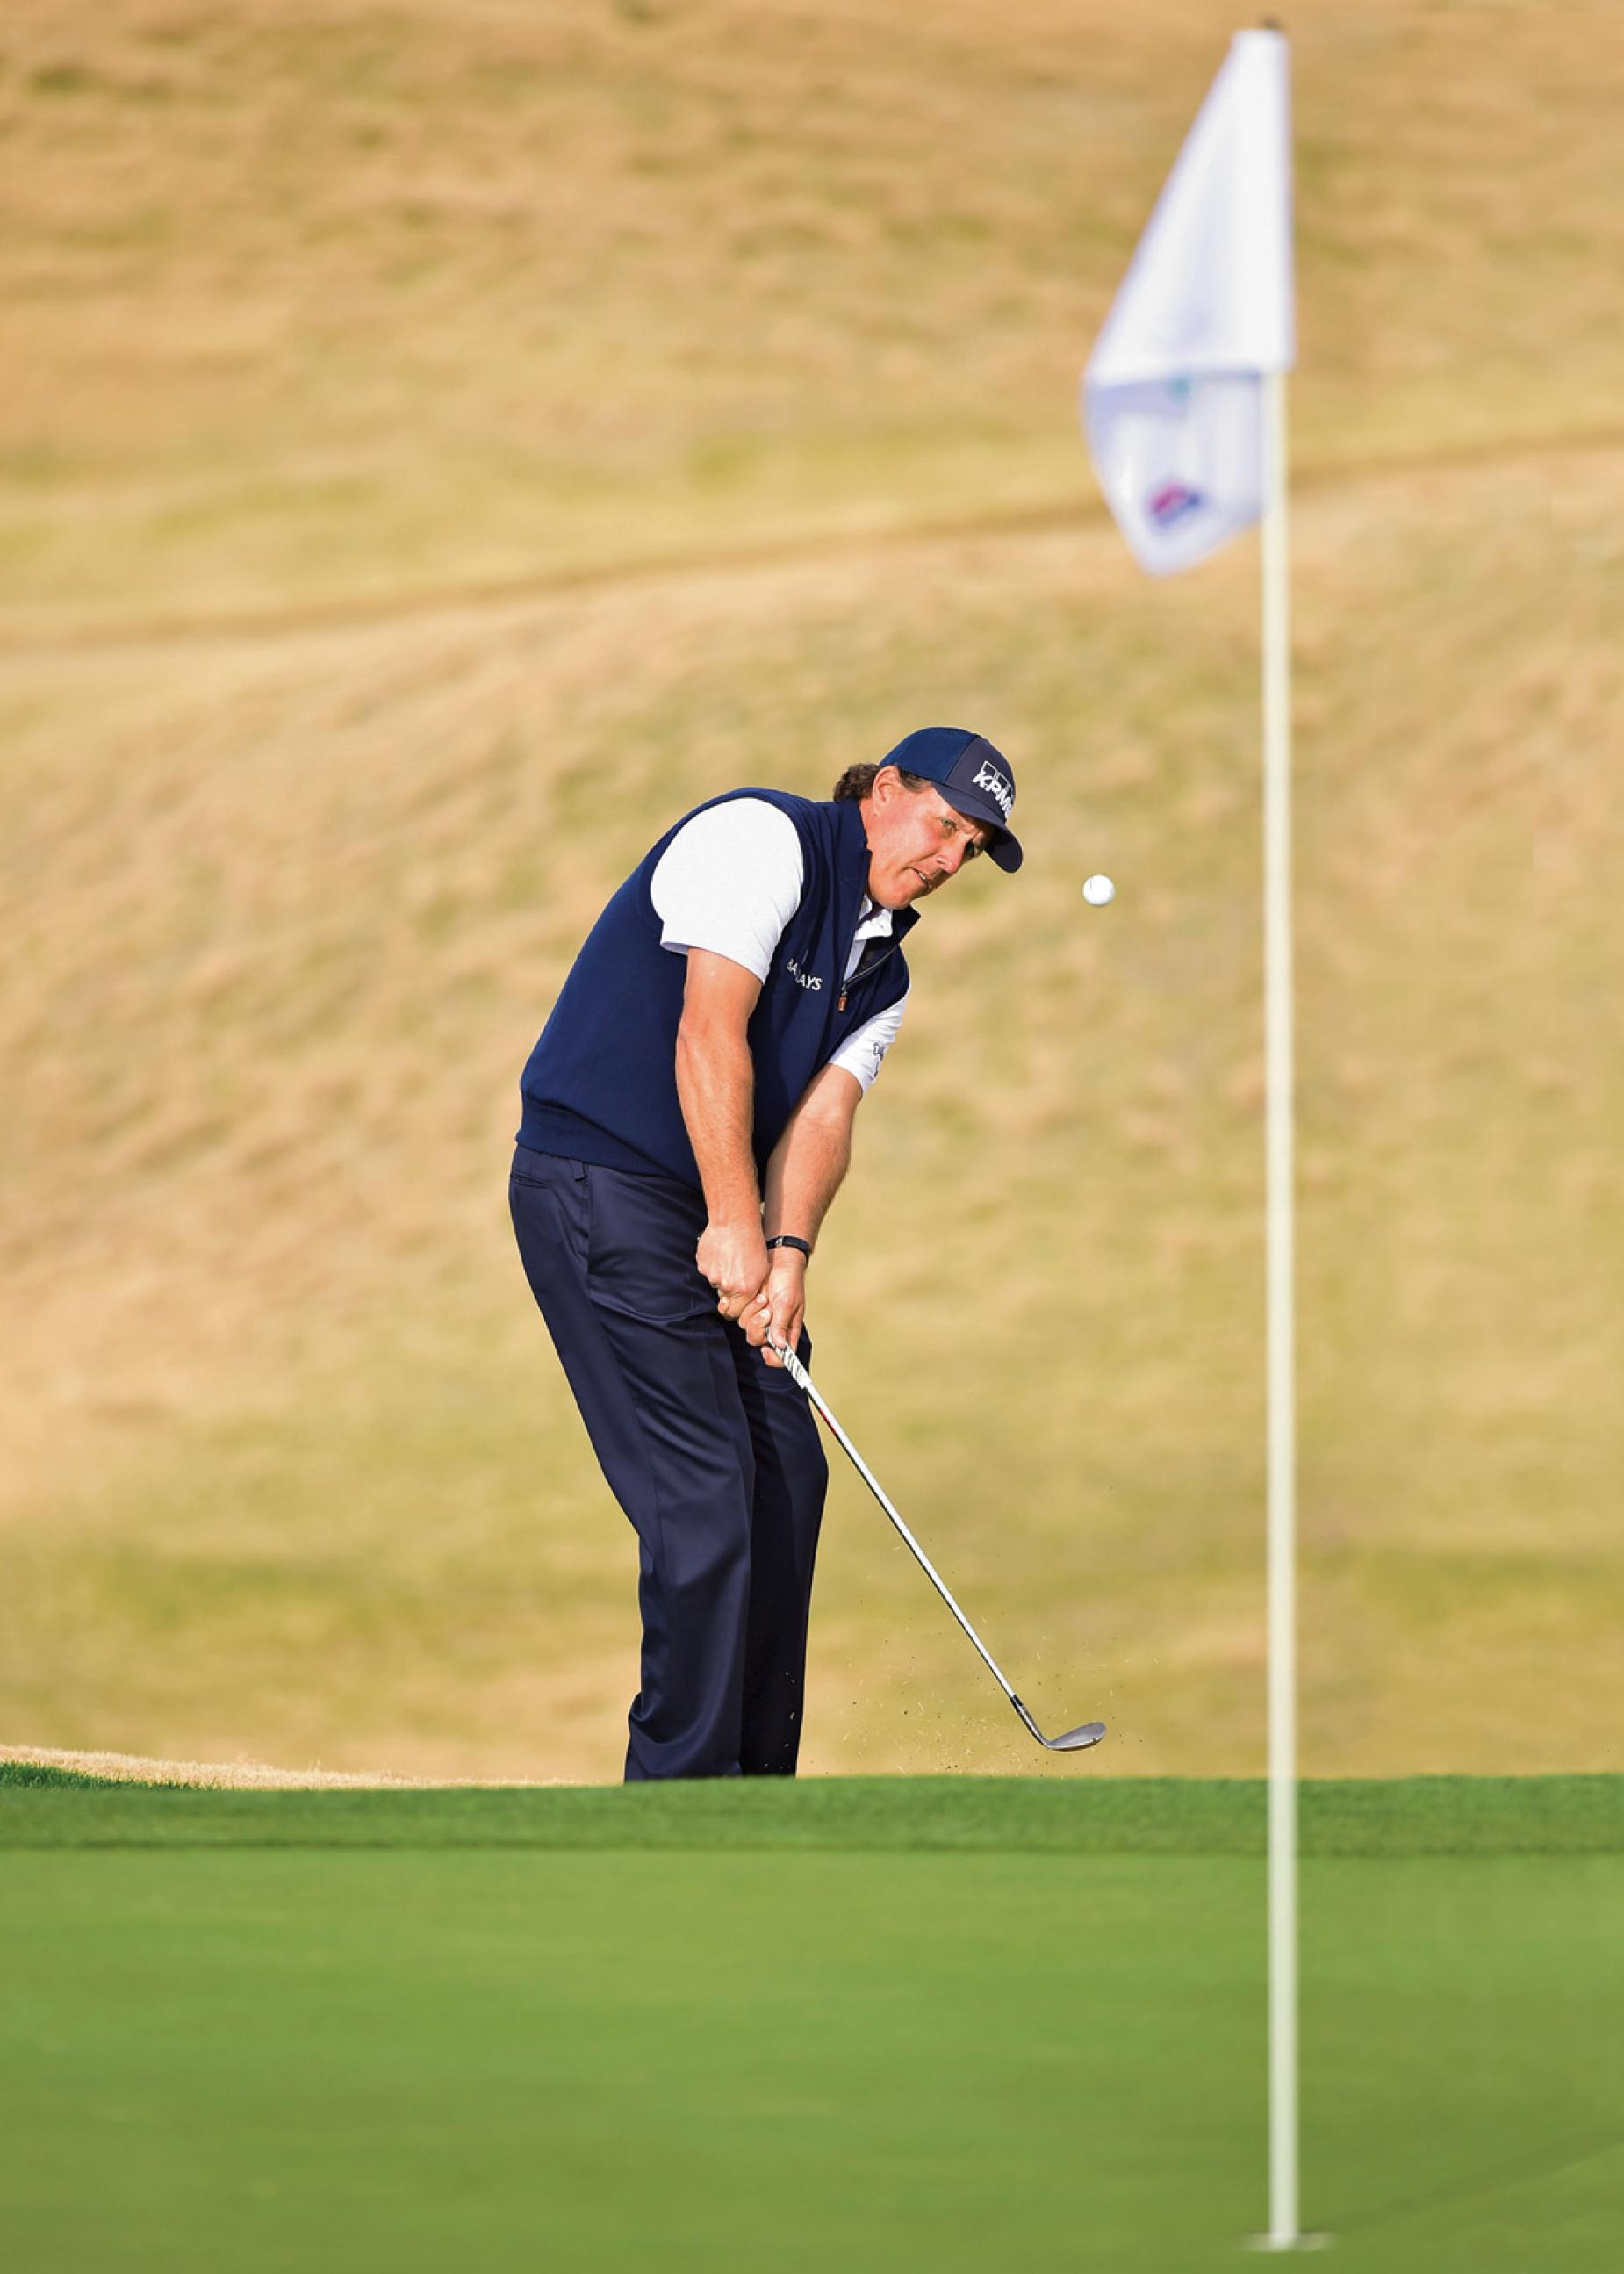 Phil-Mickelson-chipping-TPC-Stadium-course-PGA-West.jpg